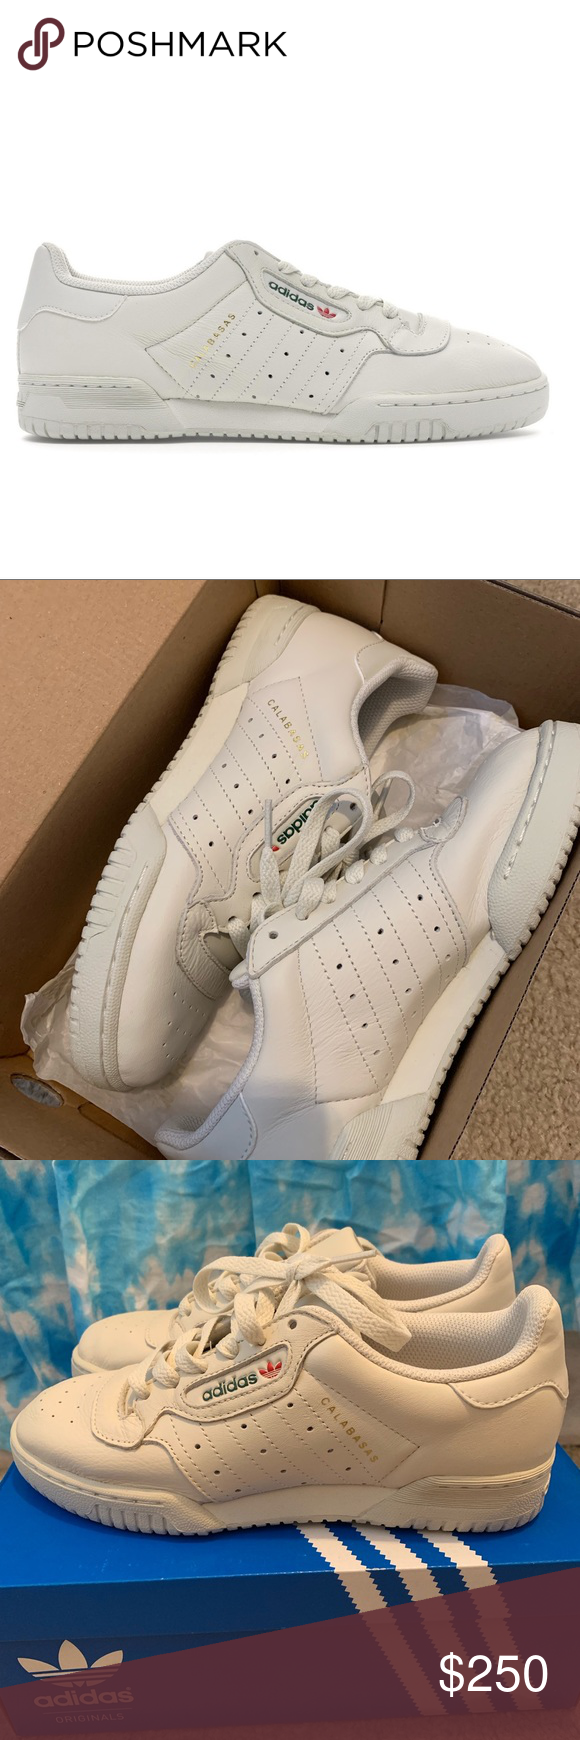 """YEEZY POWERPHASE """"CALABASAS""""- RESERVED"""